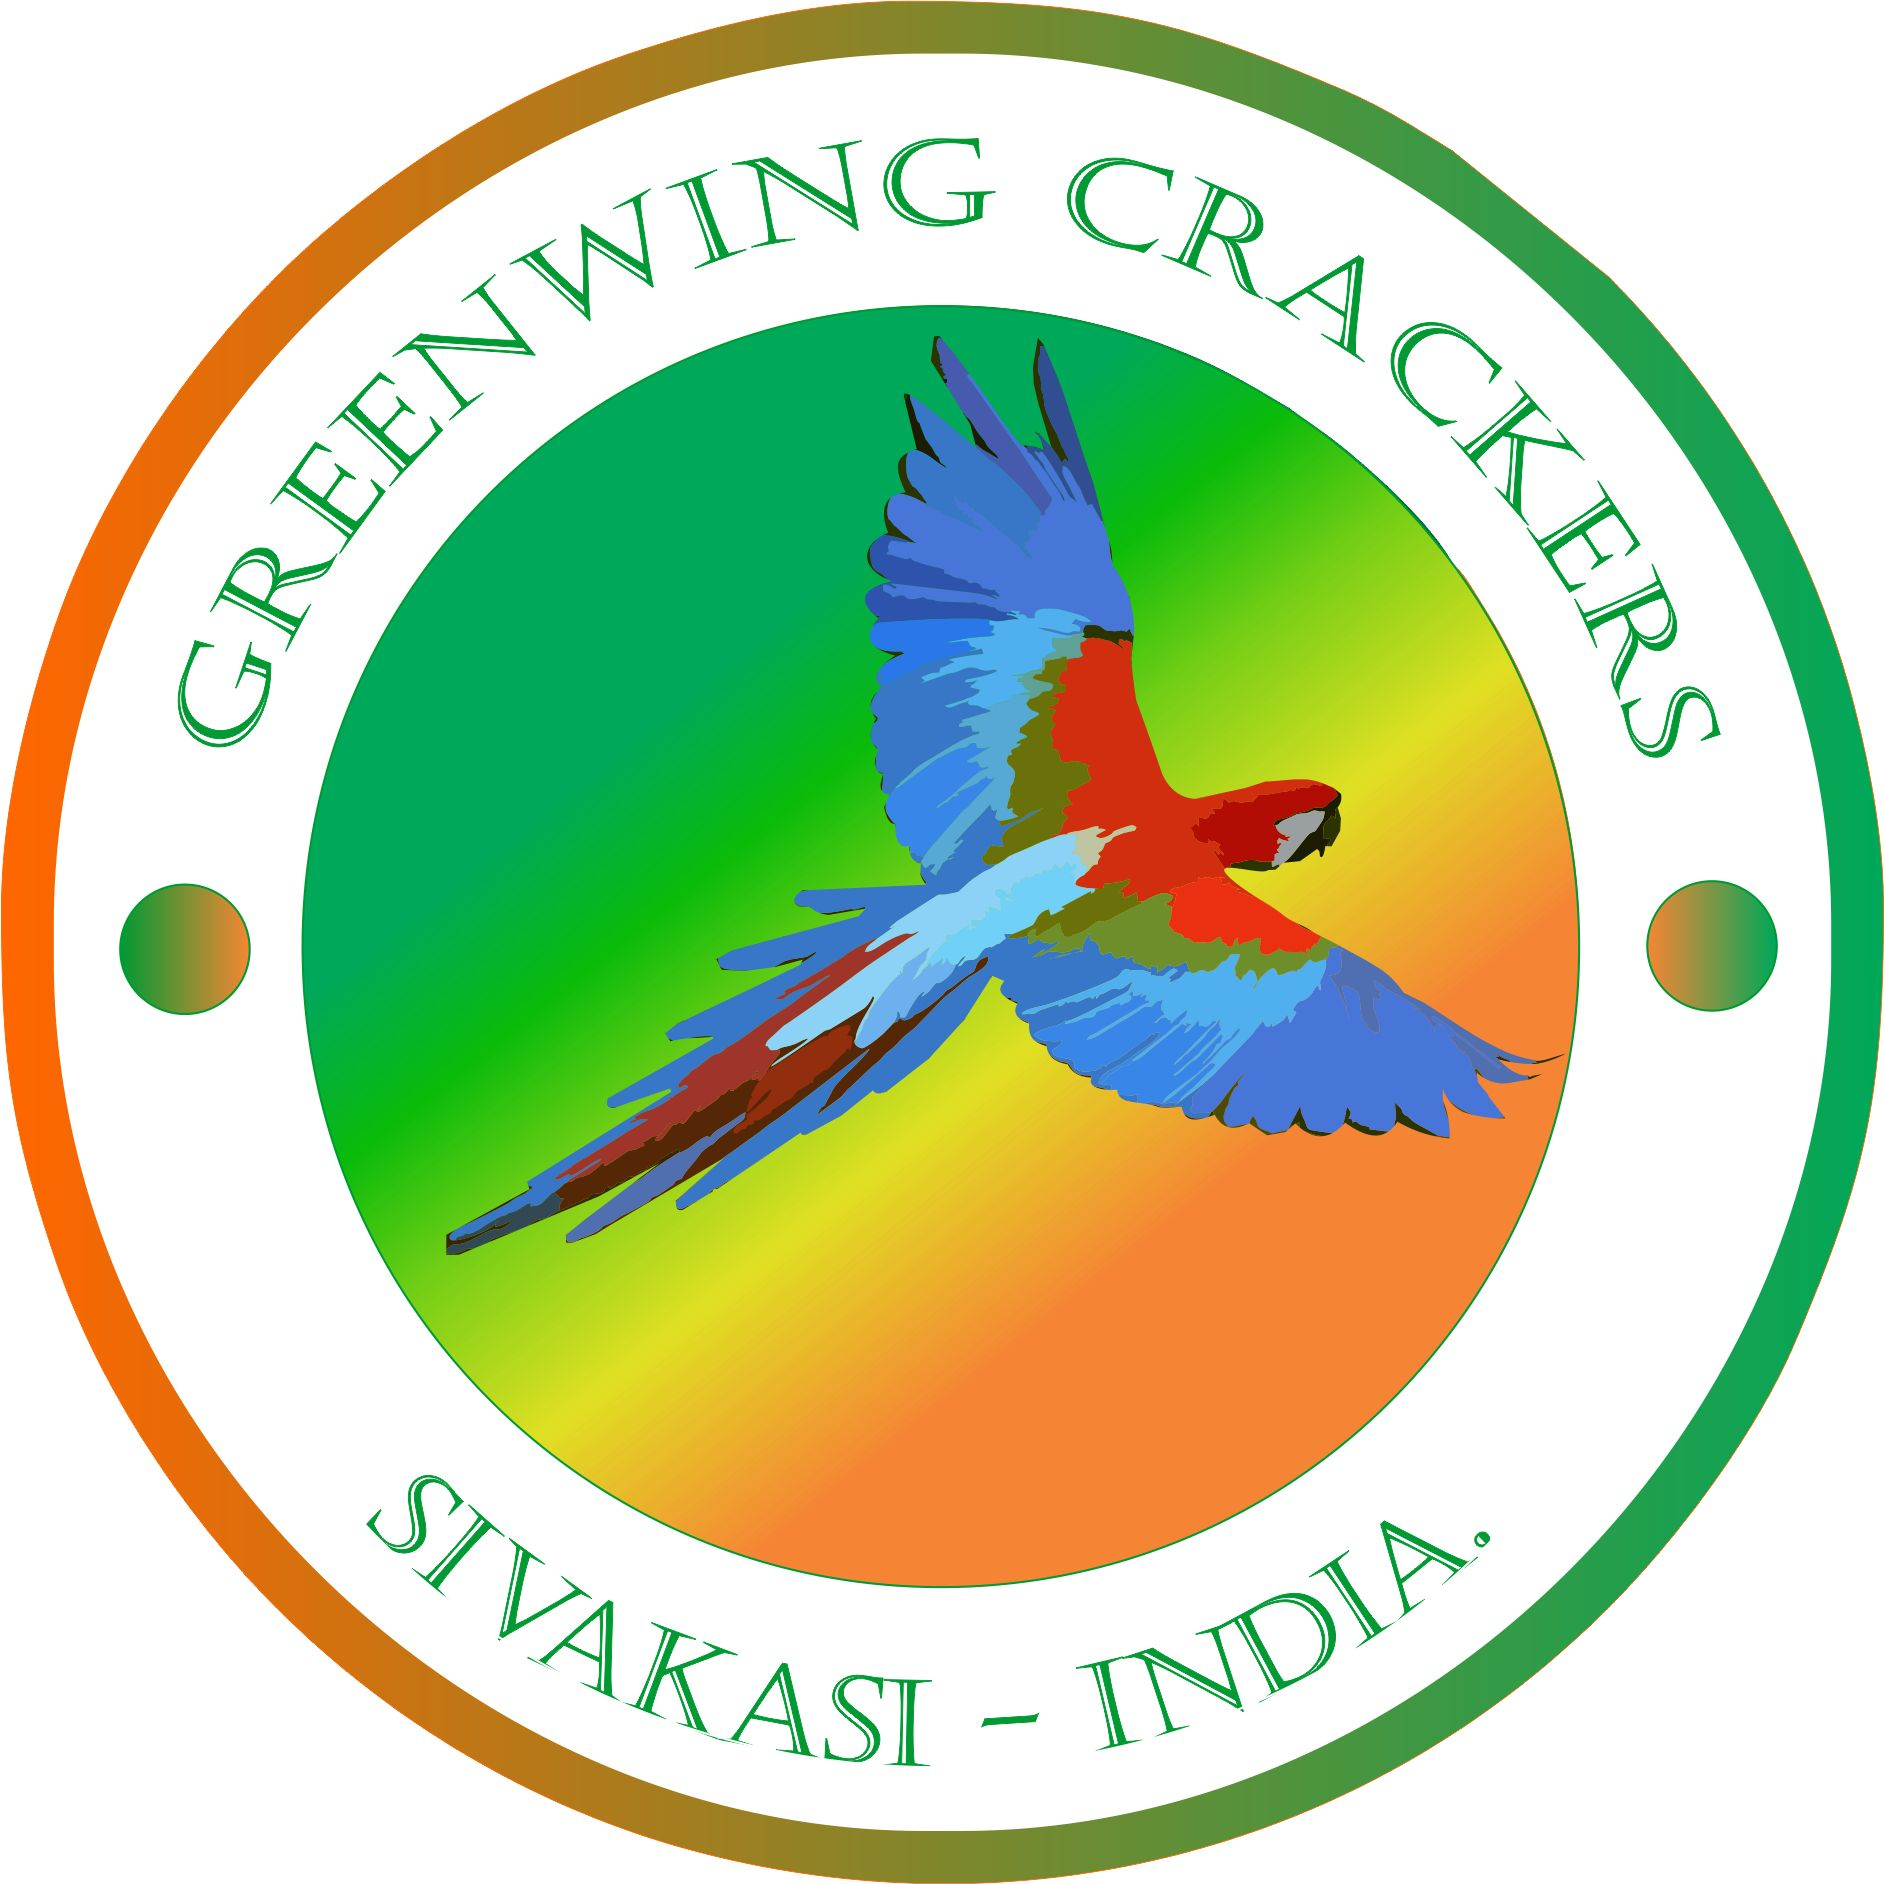 Pin by Greenwing Crackers on Greenwing Crackers